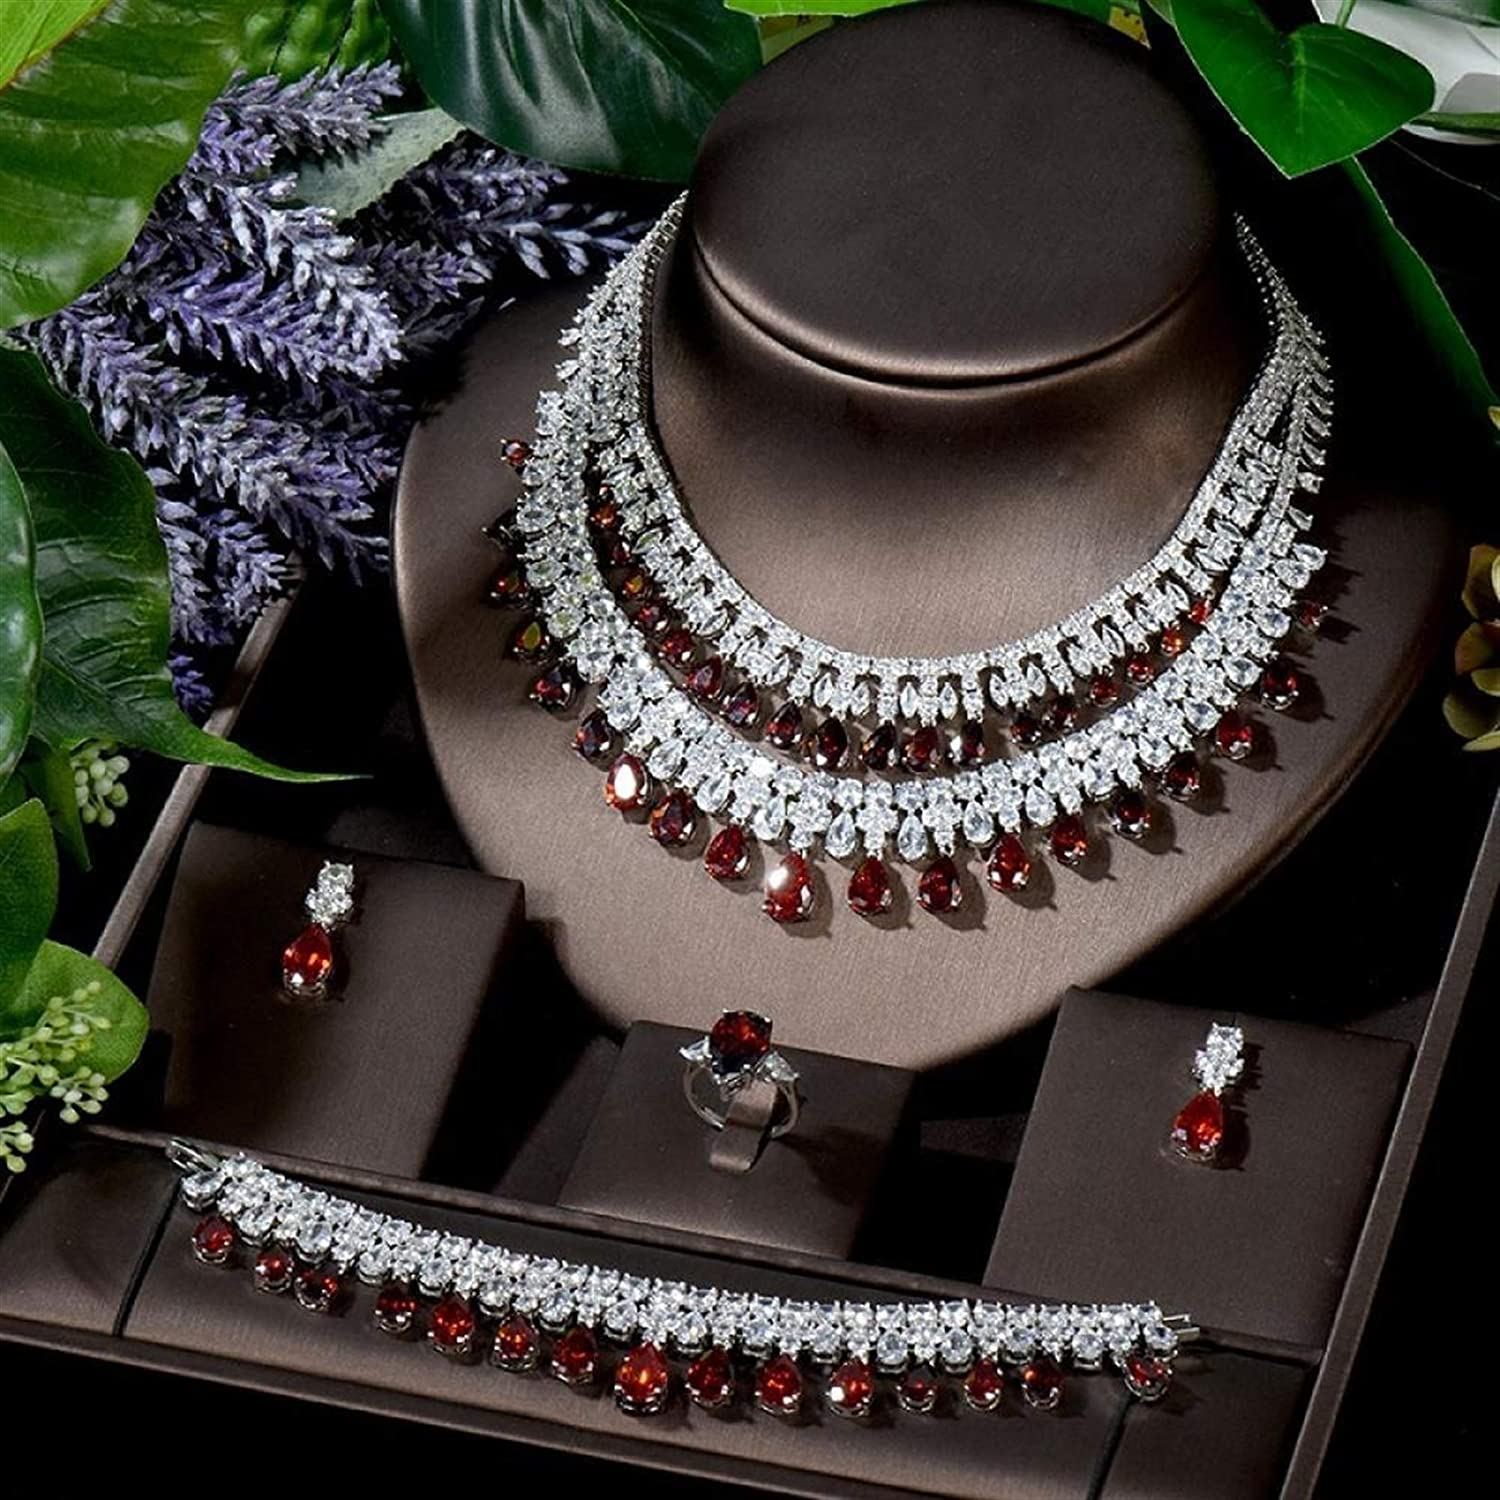 WJCRYPD Necklace Set Exclusive Necklace Earring Ring Bracelet Set Women Bridal Accessories Gifts CZ Wedding Ornament Collier Mariage Jewelry Set SurongL (Color : Red)